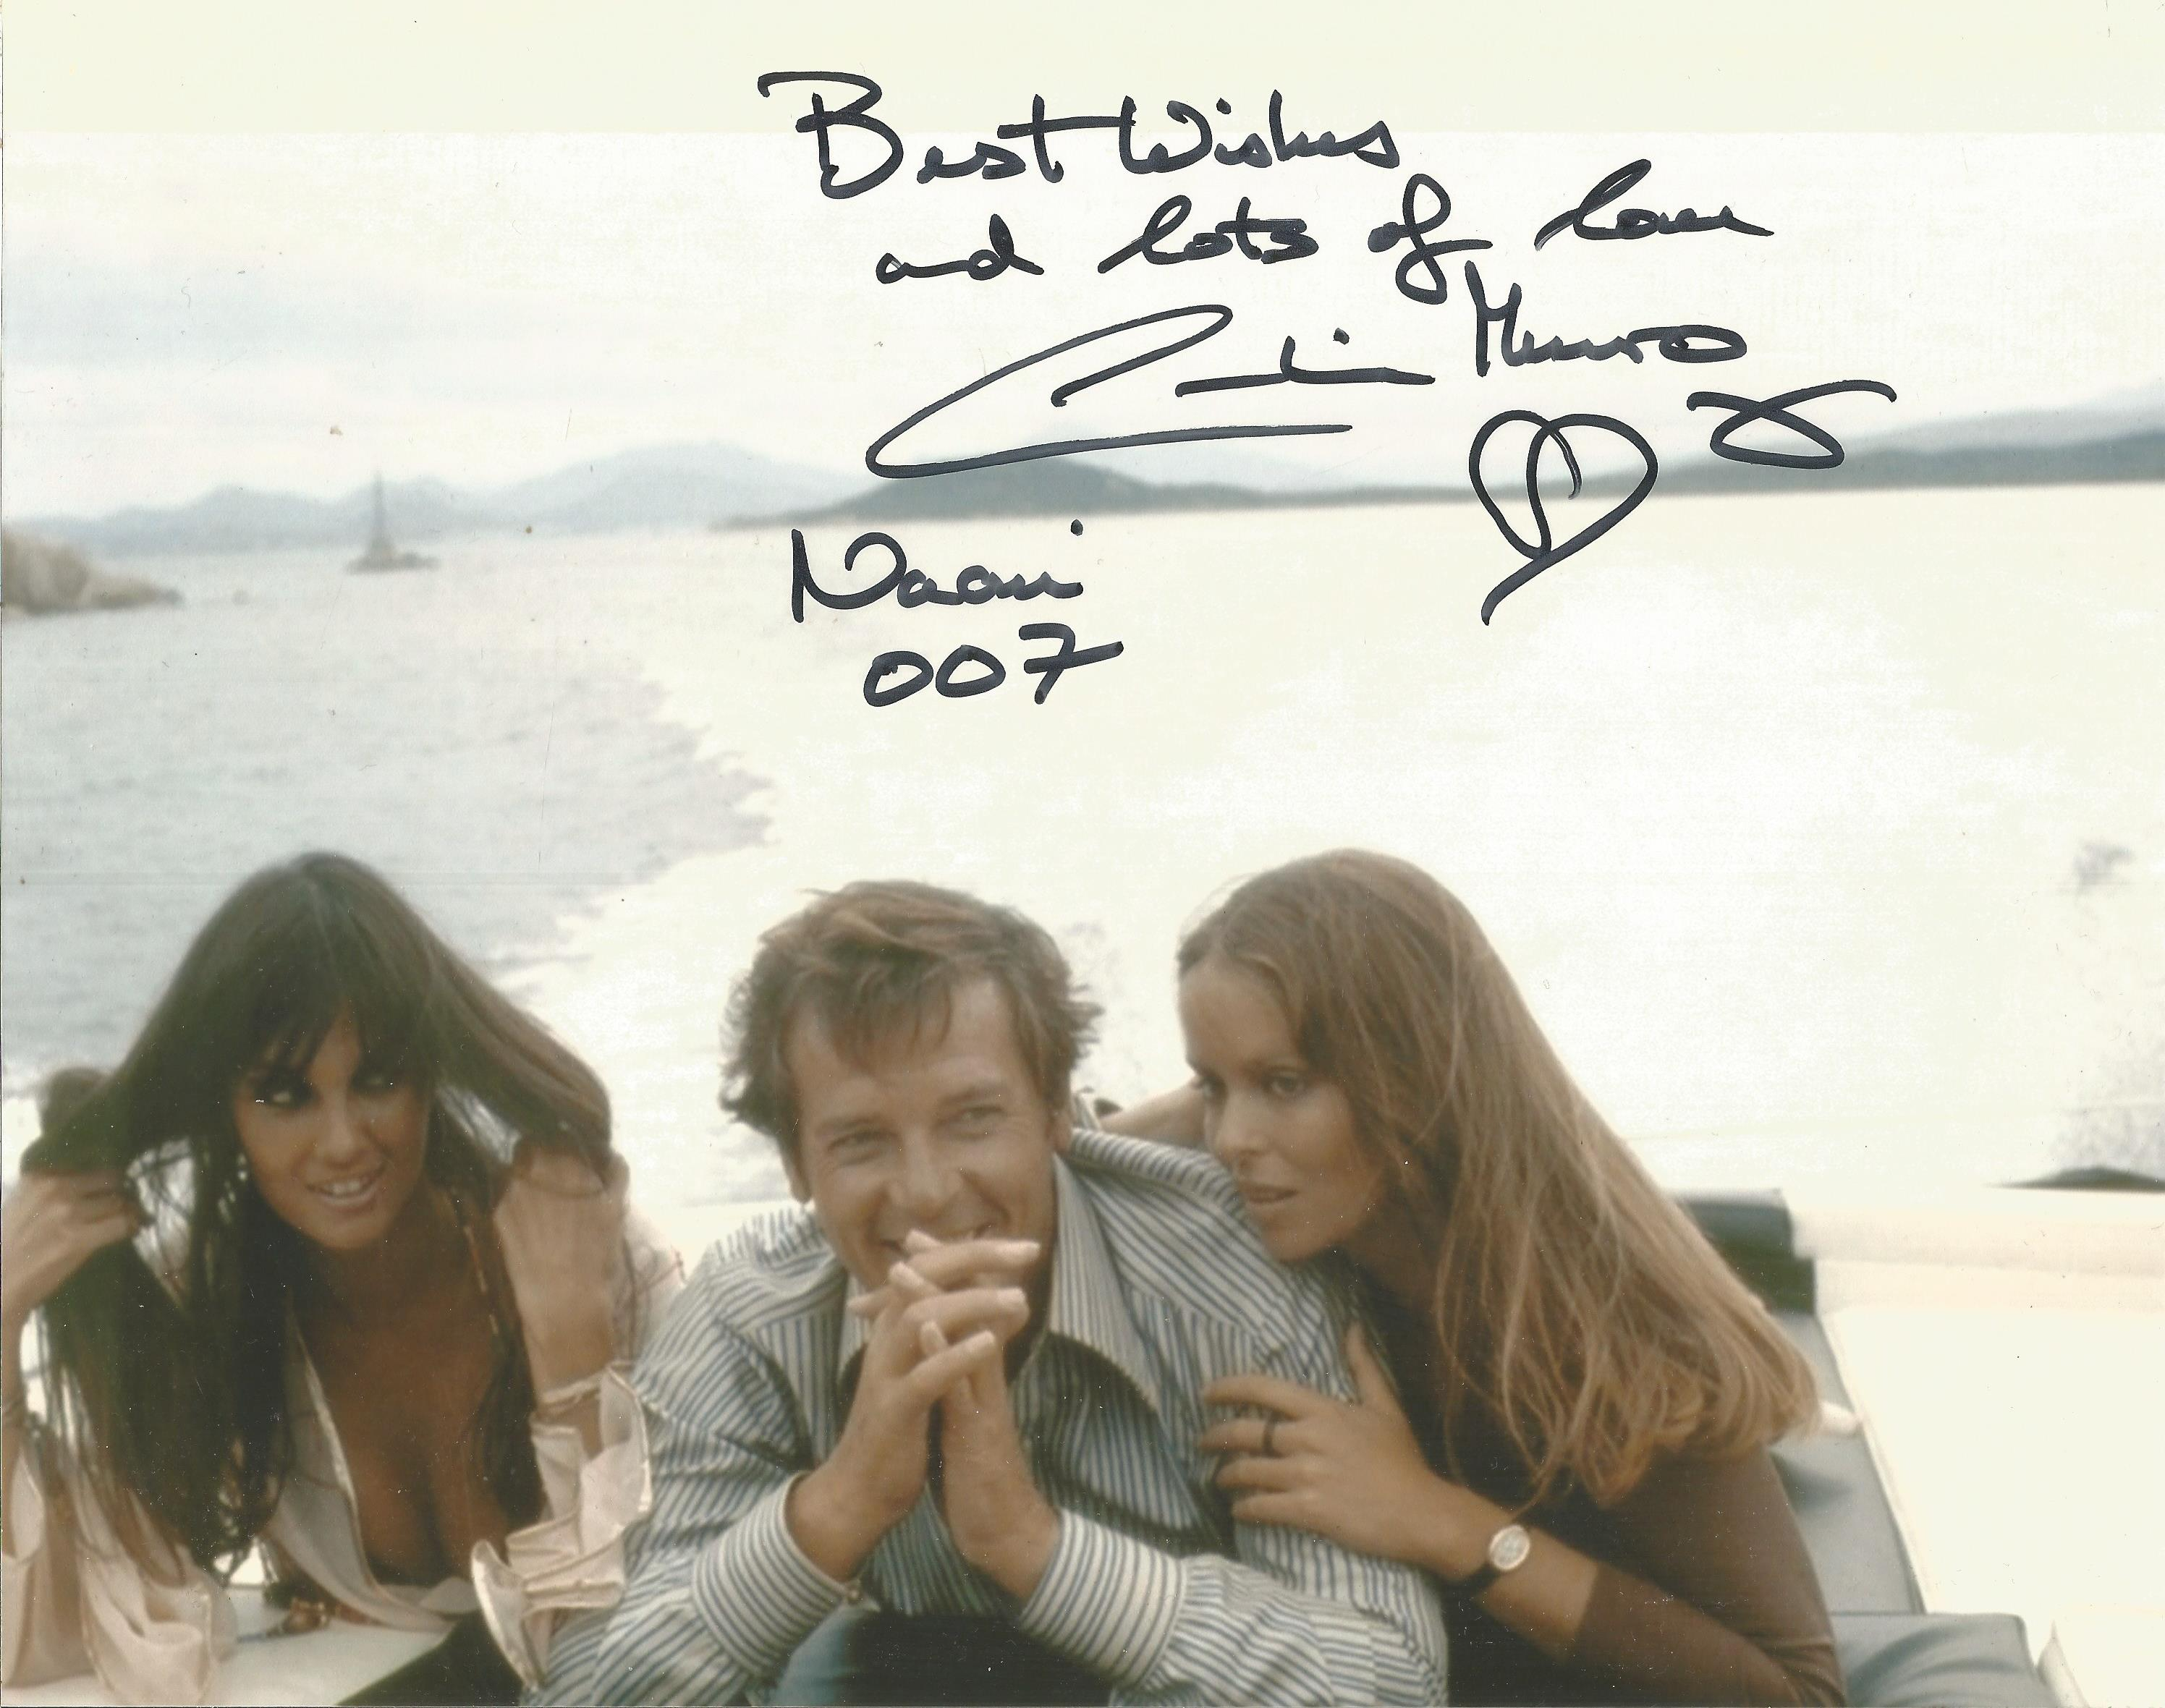 Caroline Munro as Naomi signed 10 x 8 inch colour James Bond photo with Roger Moore on speedboat.